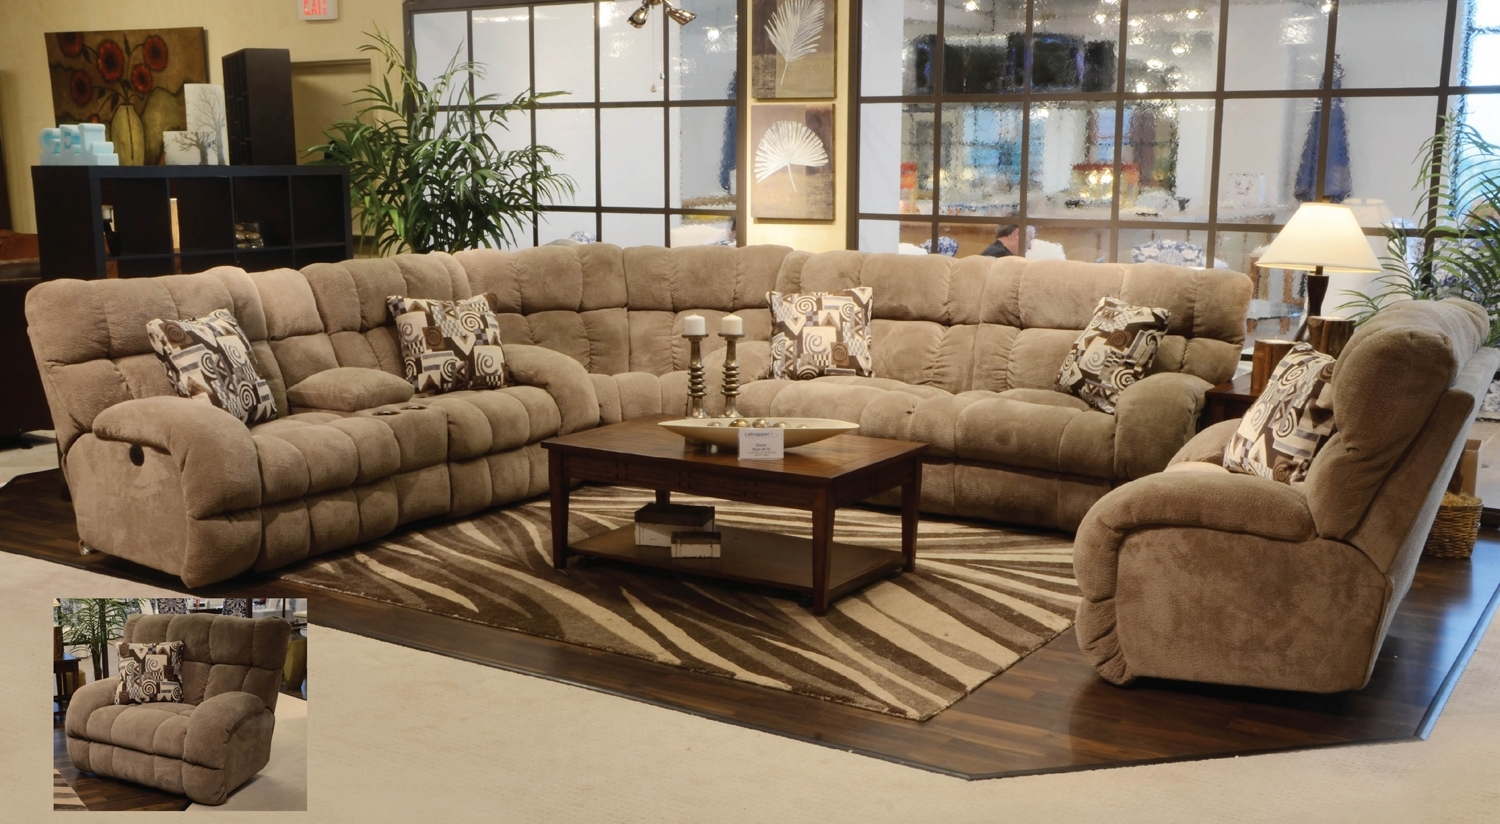 Sofas Center Huge Fabric Reclining Sectionals U For For Huge Sofas (Image 11 of 15)